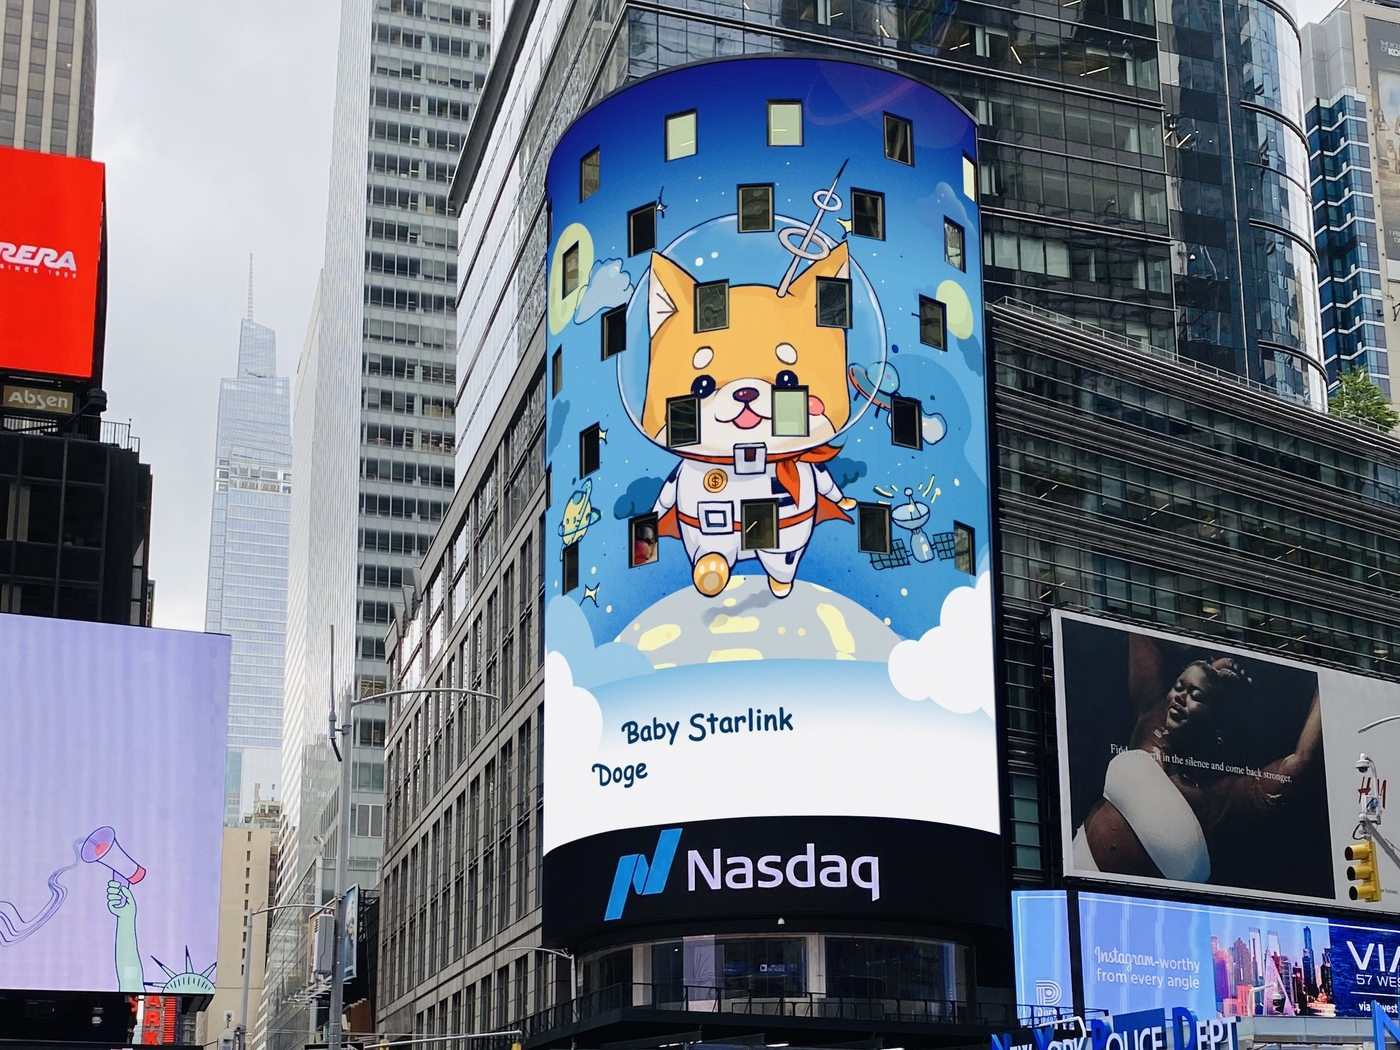 Baby Starlink Doge Displayed On The NASDAQ Giant Screen